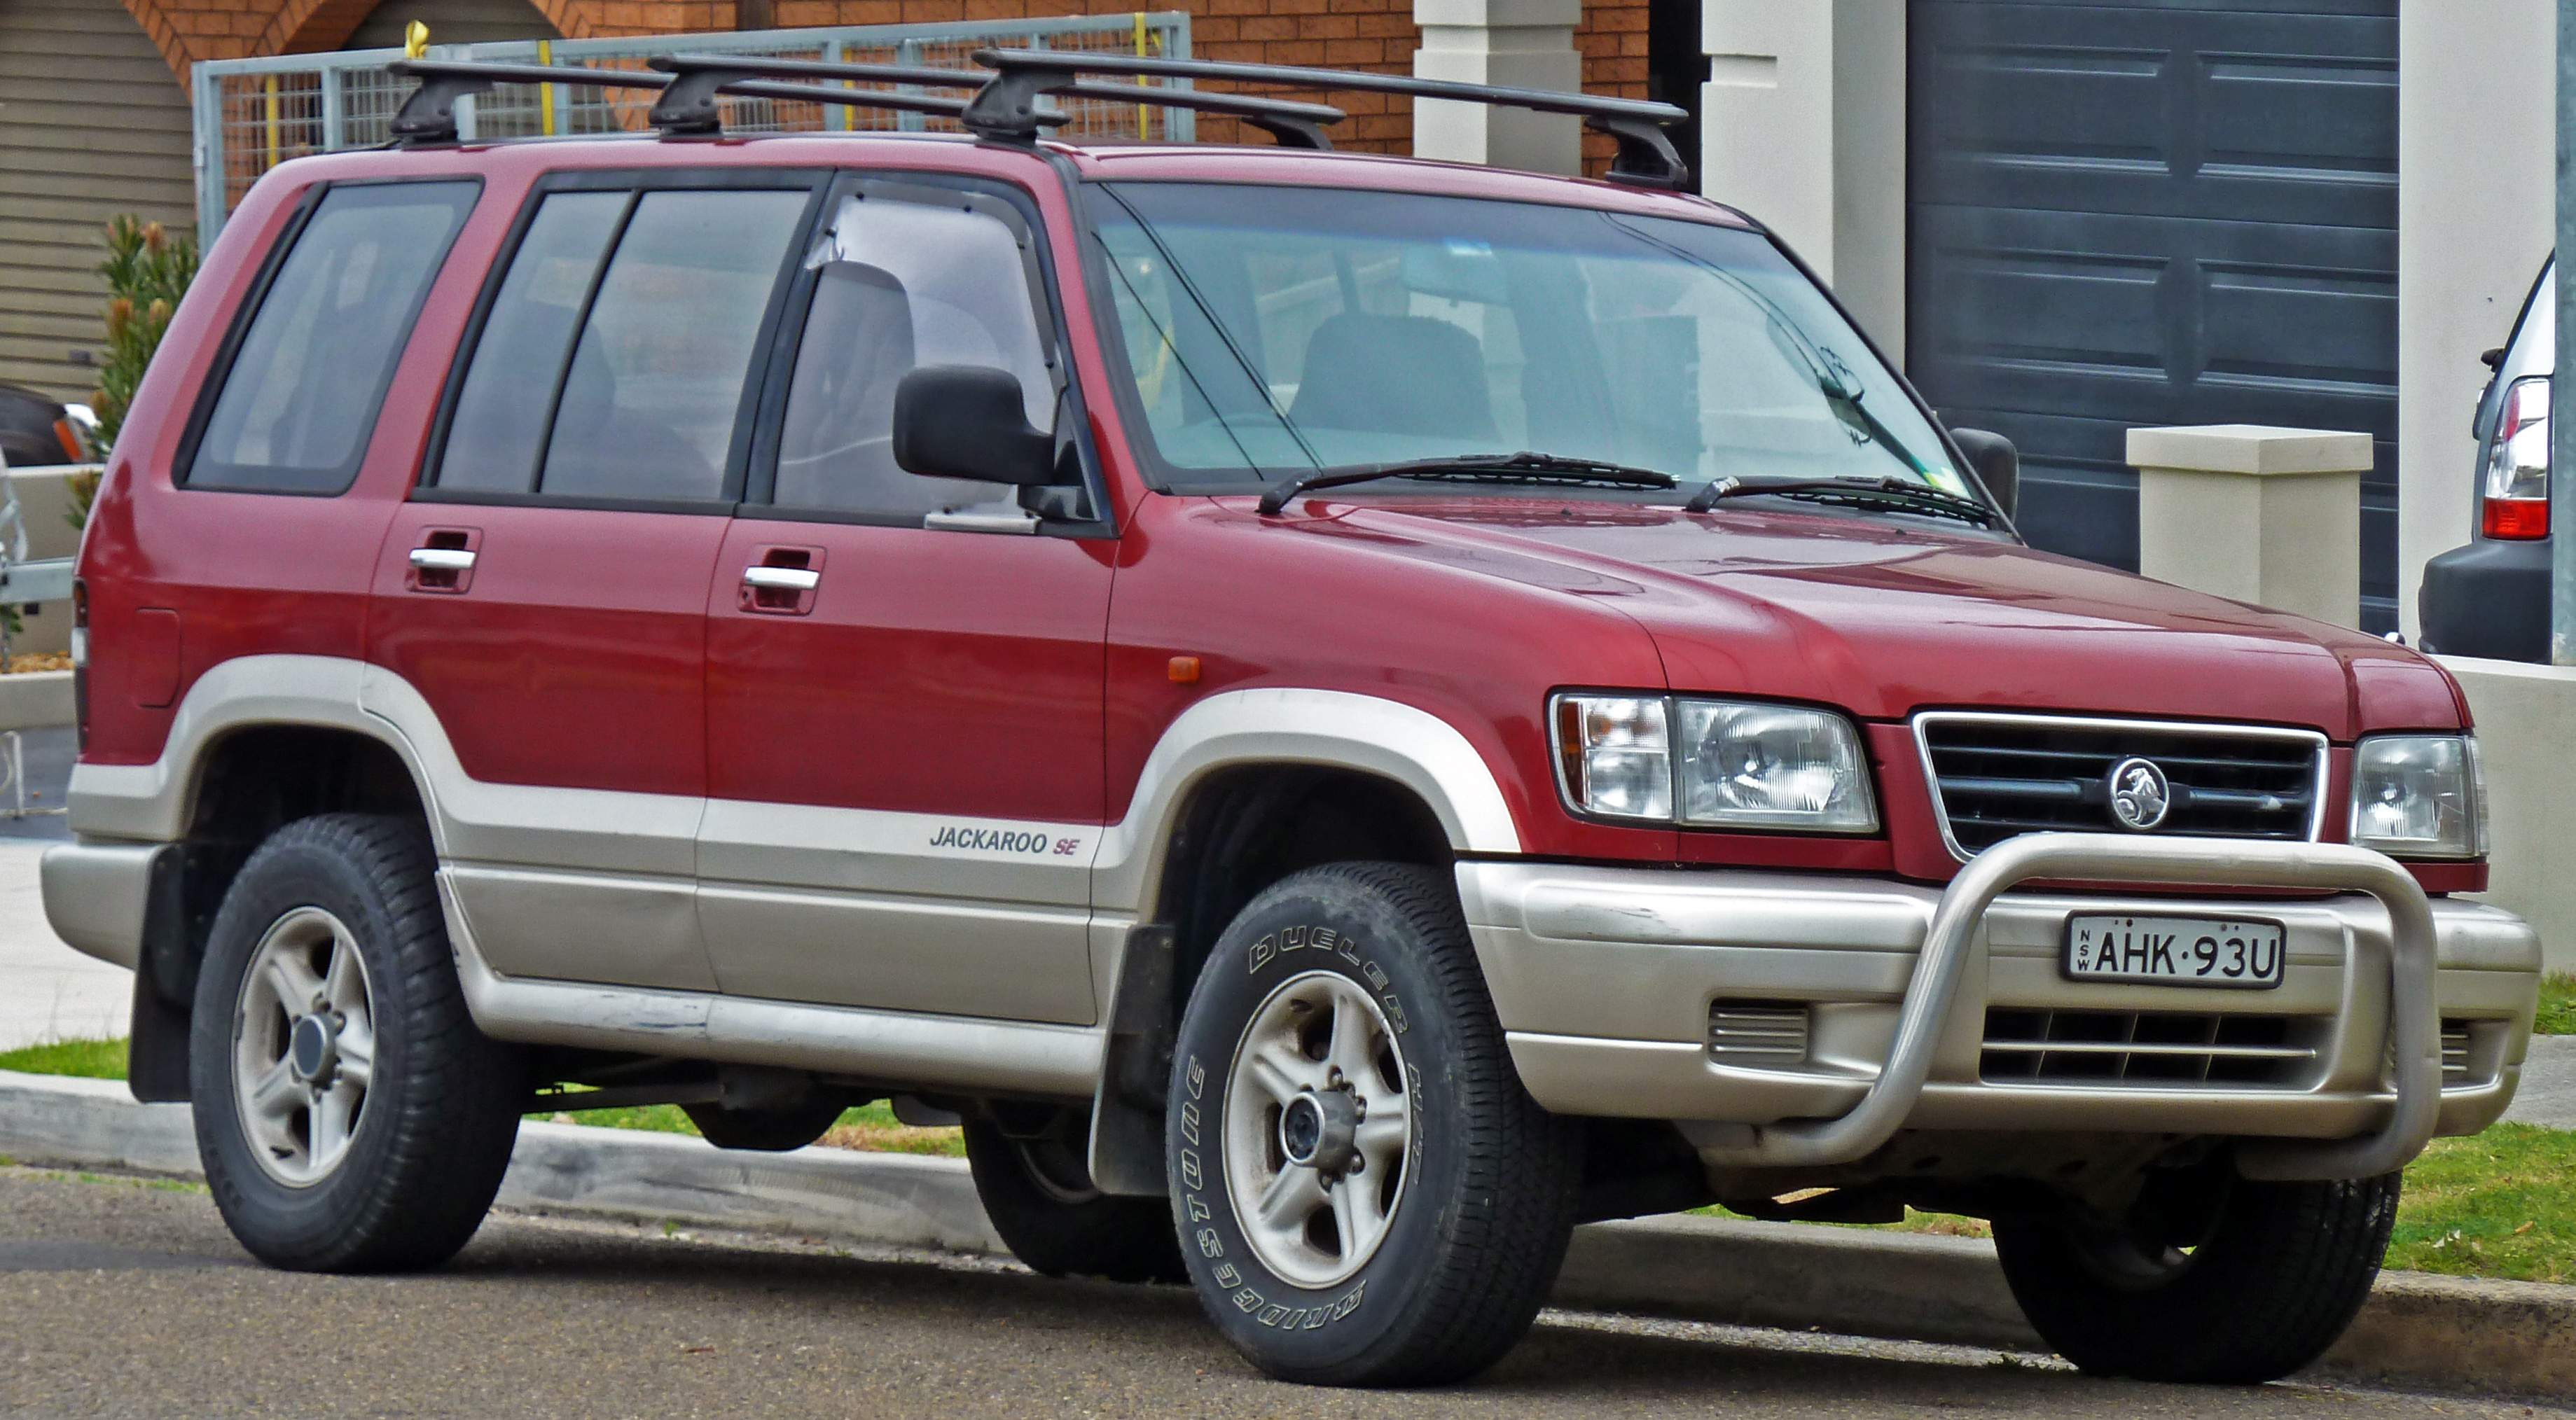 Holden jackaroo photo - 2